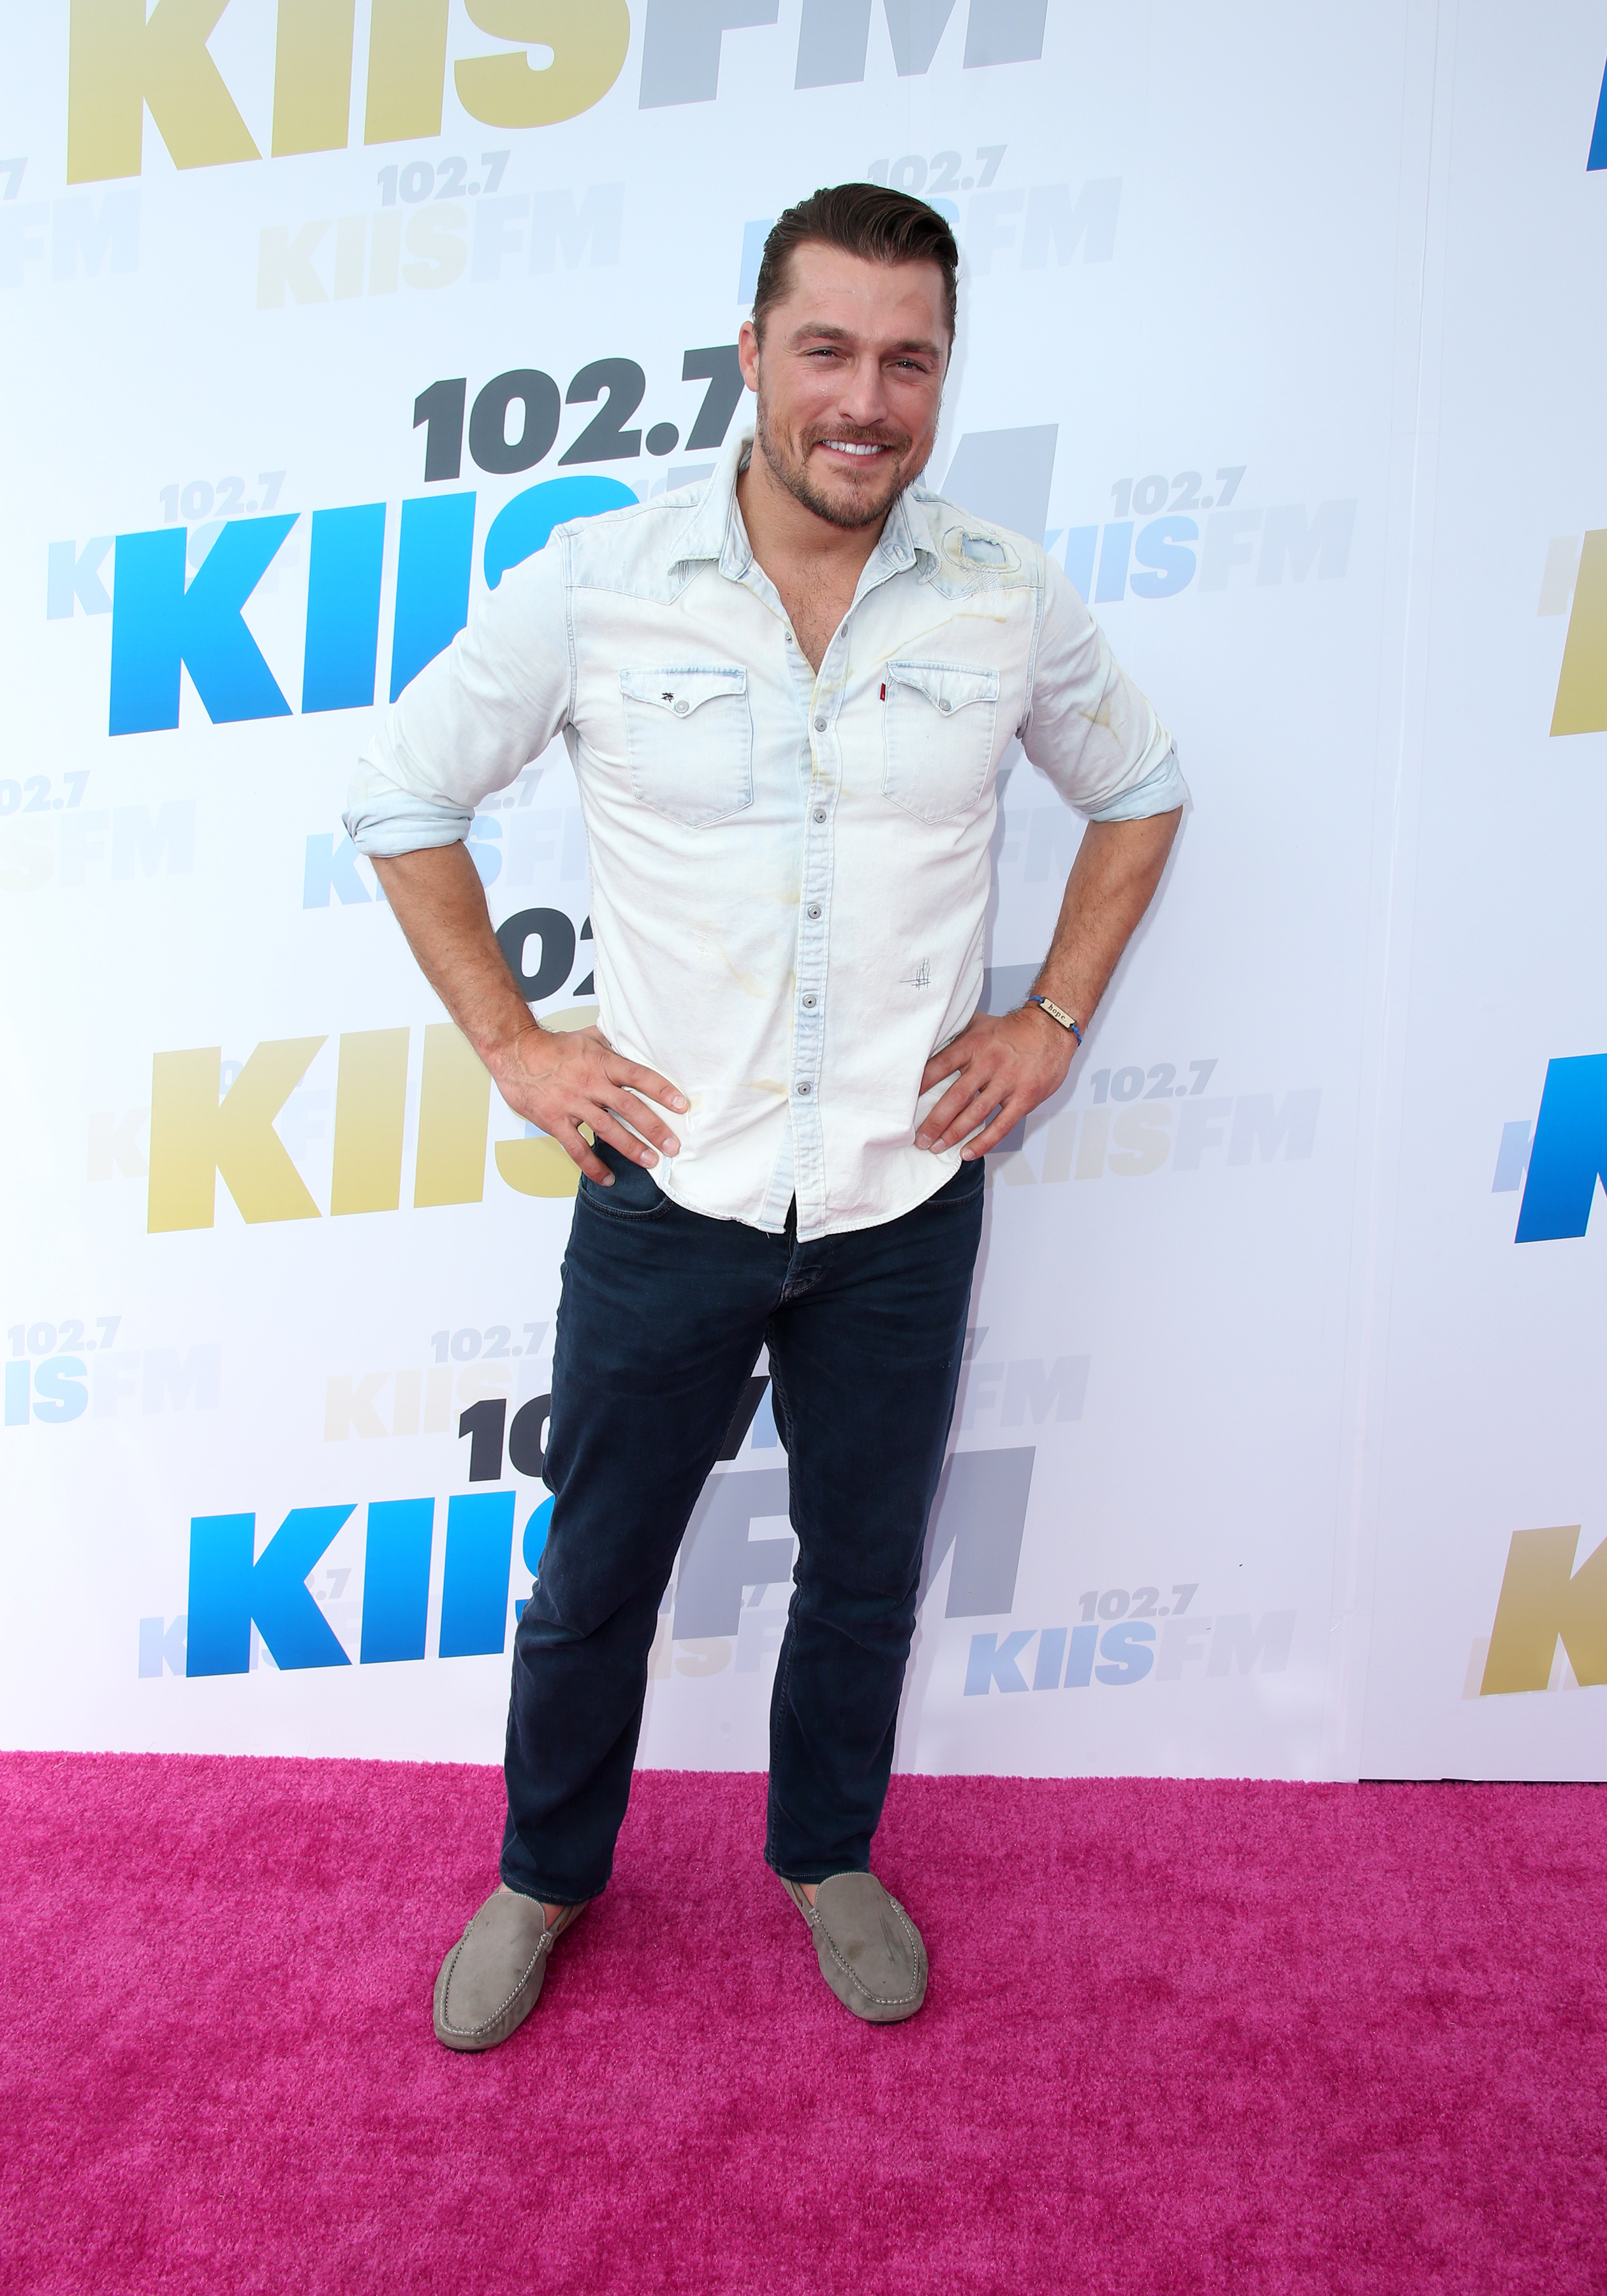 102.7 KIIS FM's Wango Tango 2016 - Arrivals                                                                      Featuring: Chris Soules                                   Where: Carson, California, United States                                   When: 14 May 2016                                   Credit: FayesVision/WENN.com